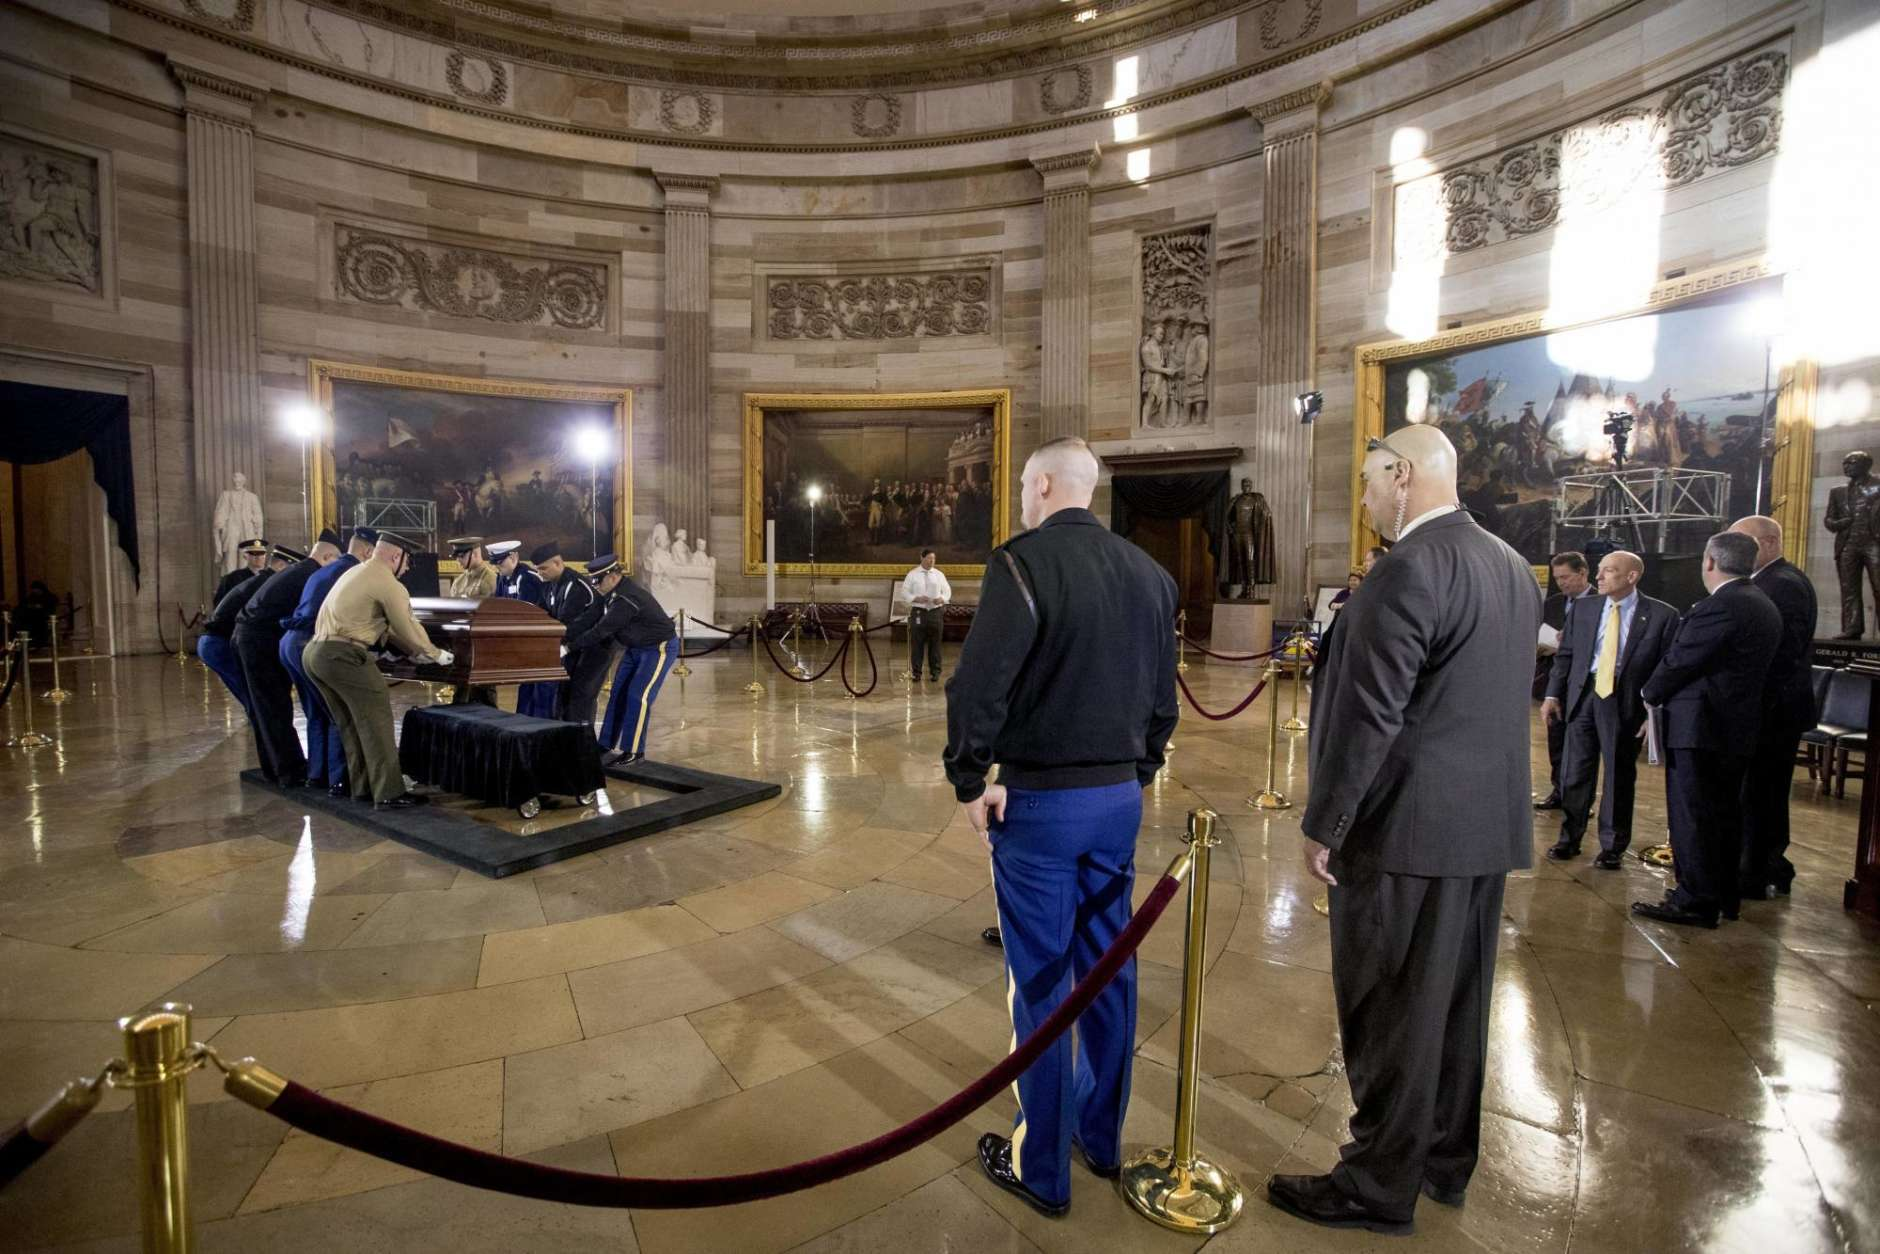 Military members practice placing a casket in the Rotunda of the Capitol, Tuesday, Feb. 27, 2018  in Washington, for the late Rev. Billy Graham to lie in honor tomorrow.  President Tump, Congressional leaders and the Graham family will be in attendance.  (AP Photo/Andrew Harnik)